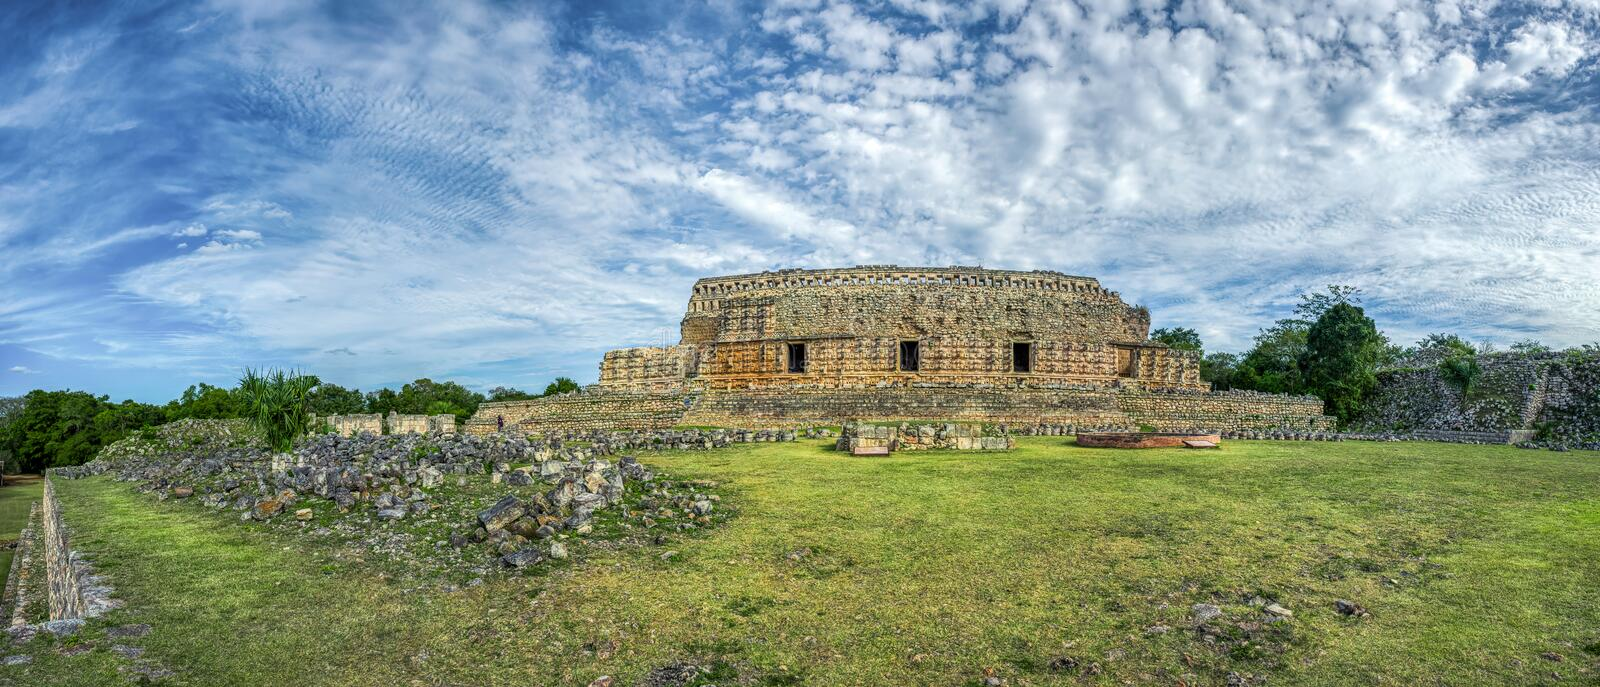 Panoramic view of Kabah, Maya archaeological site, Merida, Yucatan, Mexico stock photos